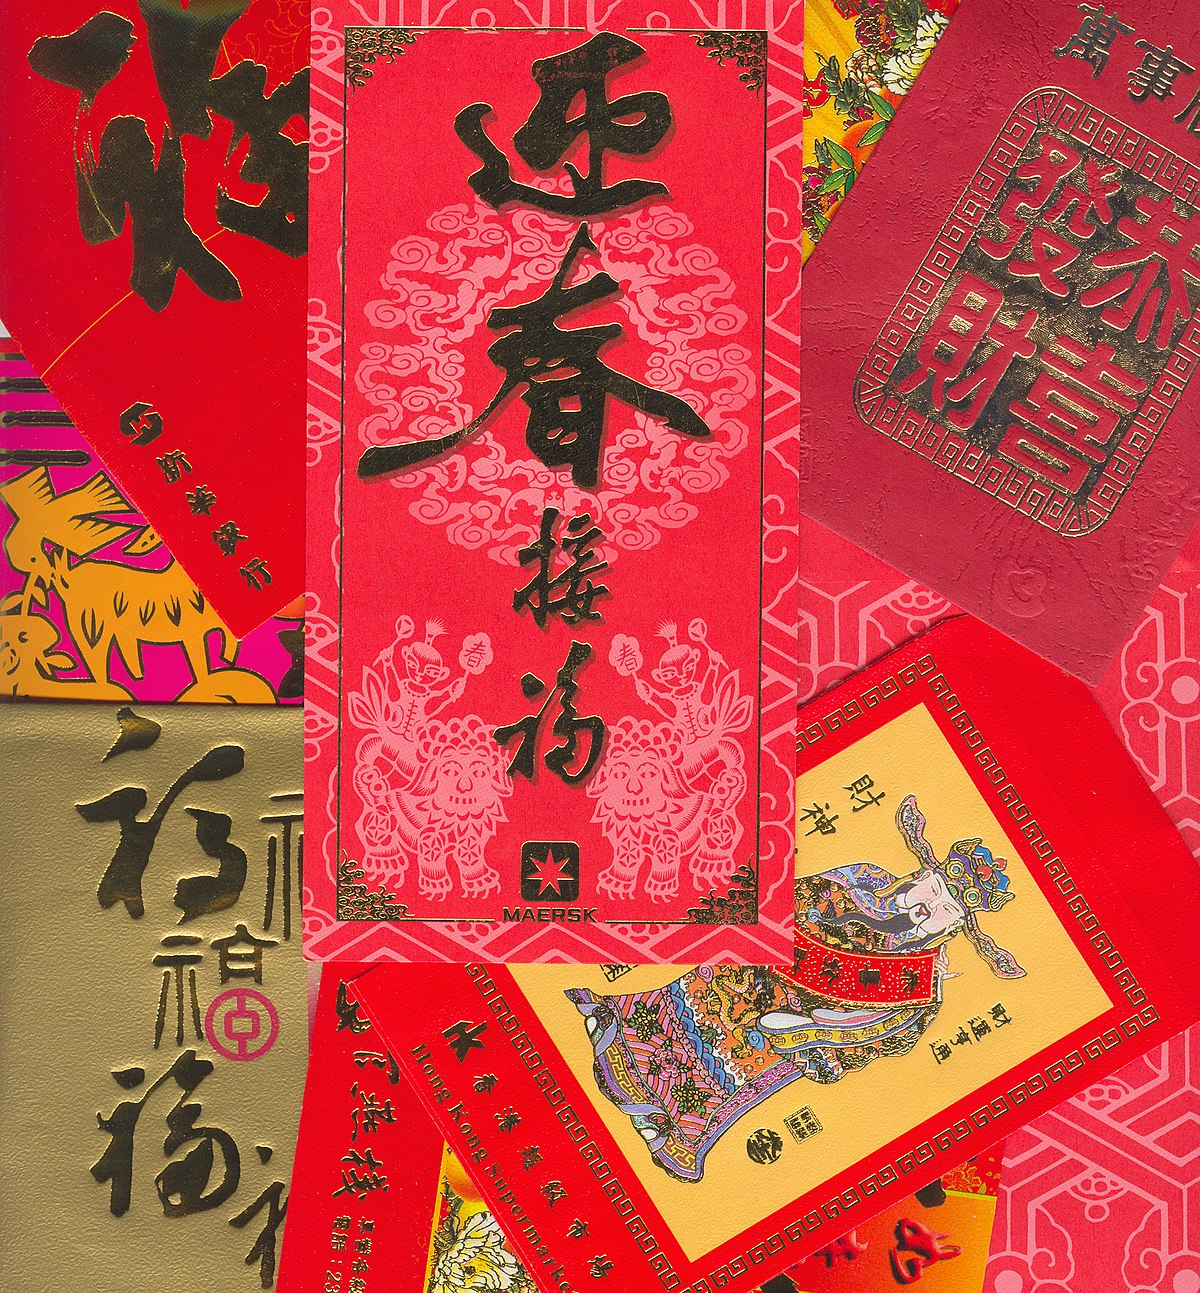 httpsuploadwikimediaorgwikipediacommonsthu - Chinese New Year Red Envelope